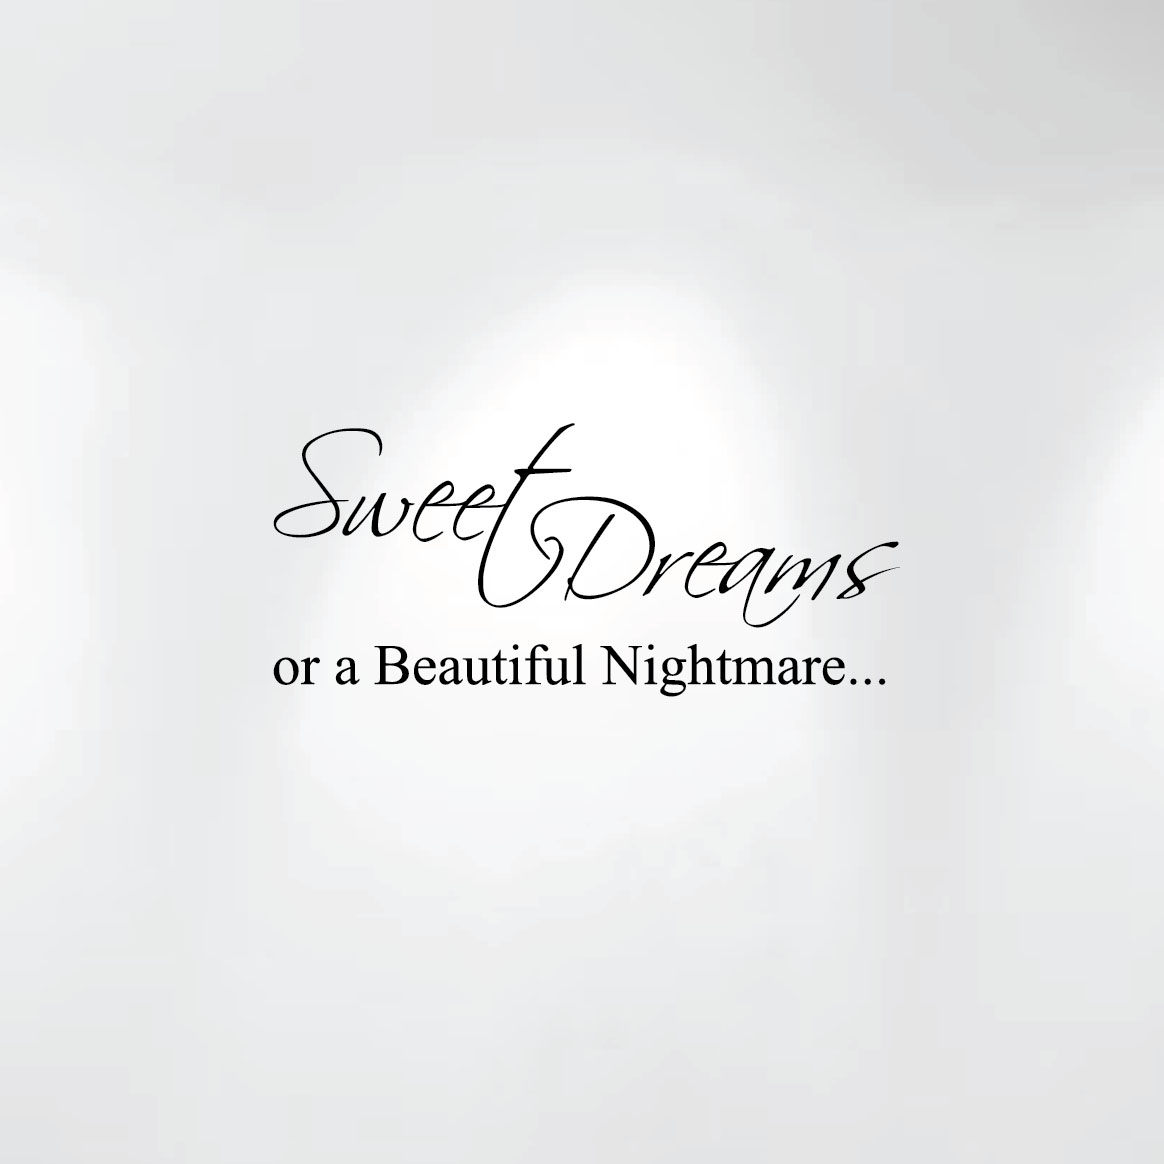 1186-sweet-dreams-or-a-beautiful-nightmare-wall-decal.jpg